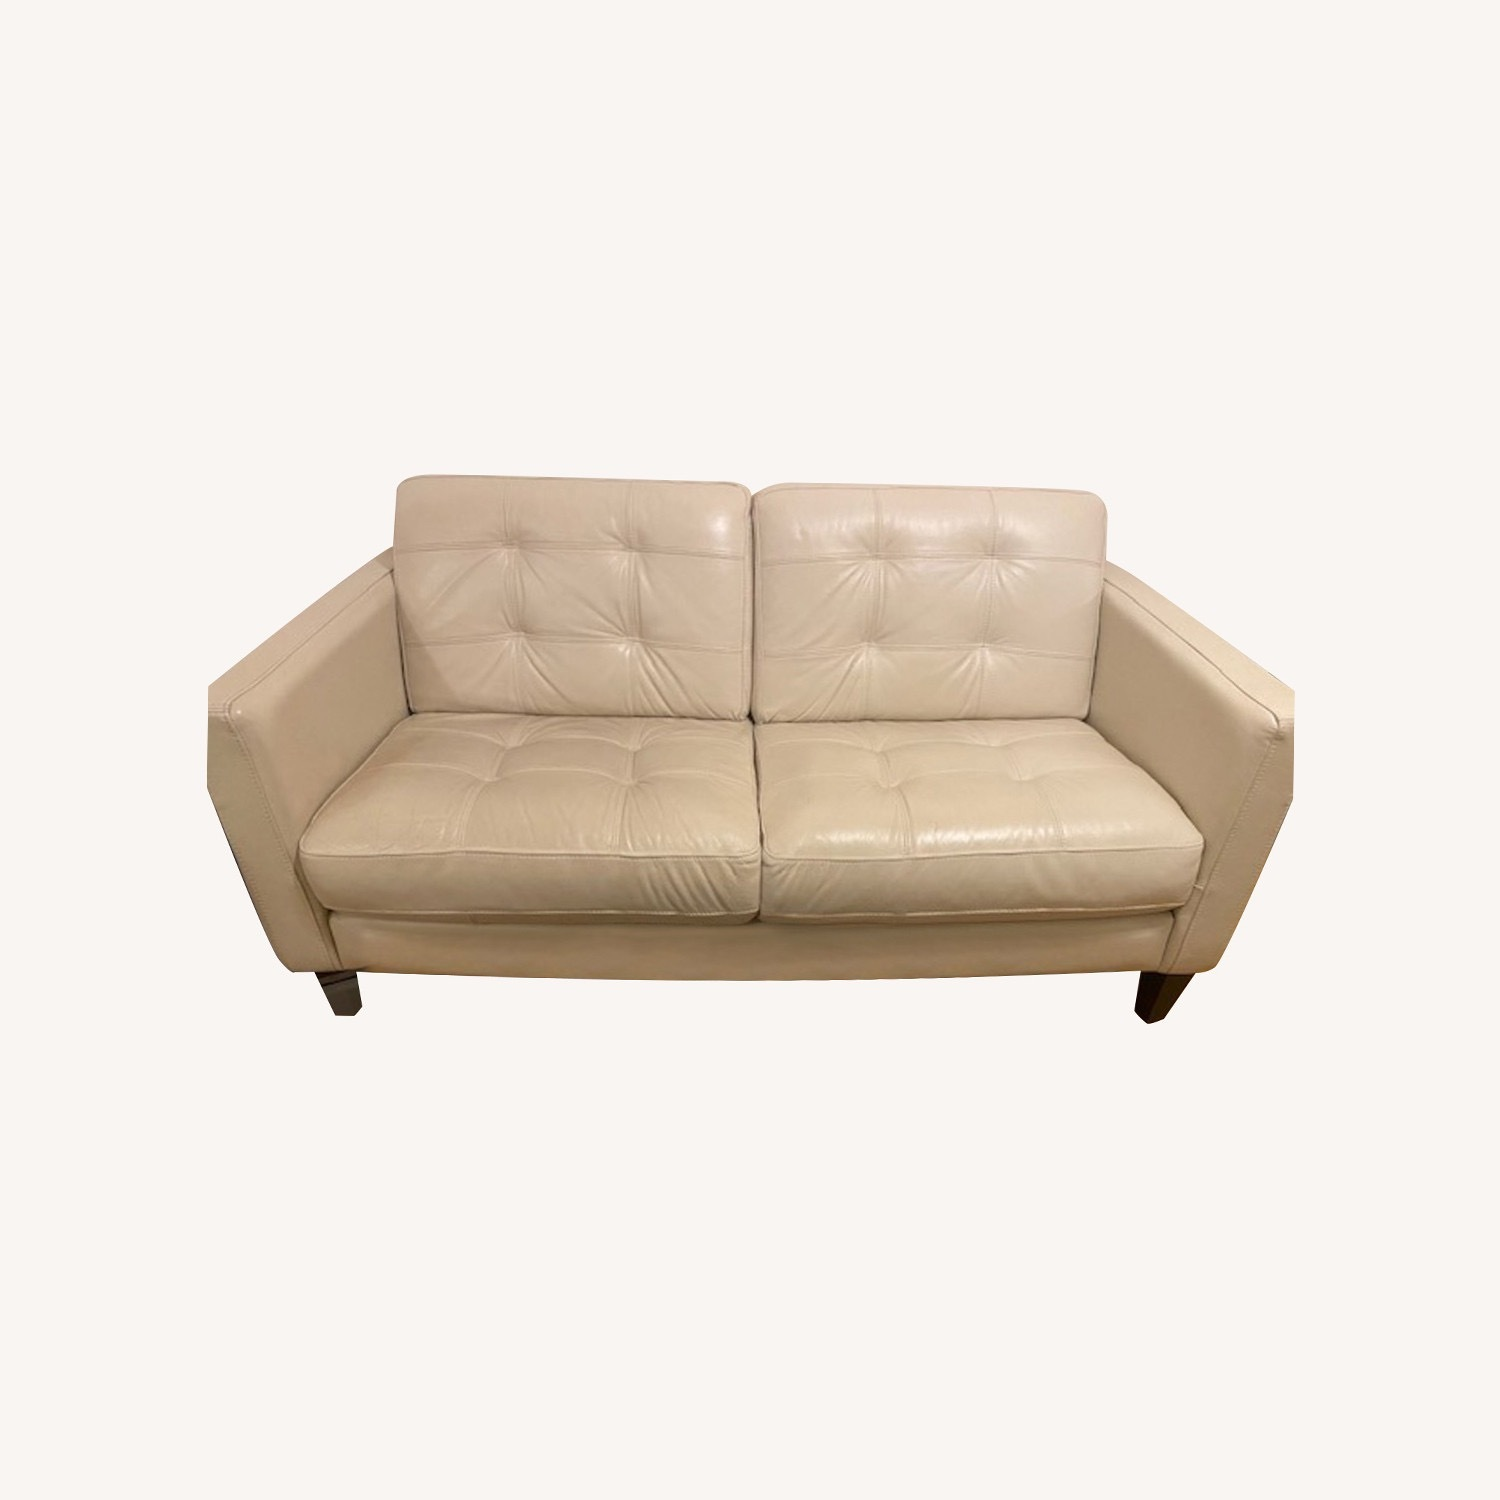 Macy's Leather Tufted Loveseat - image-0